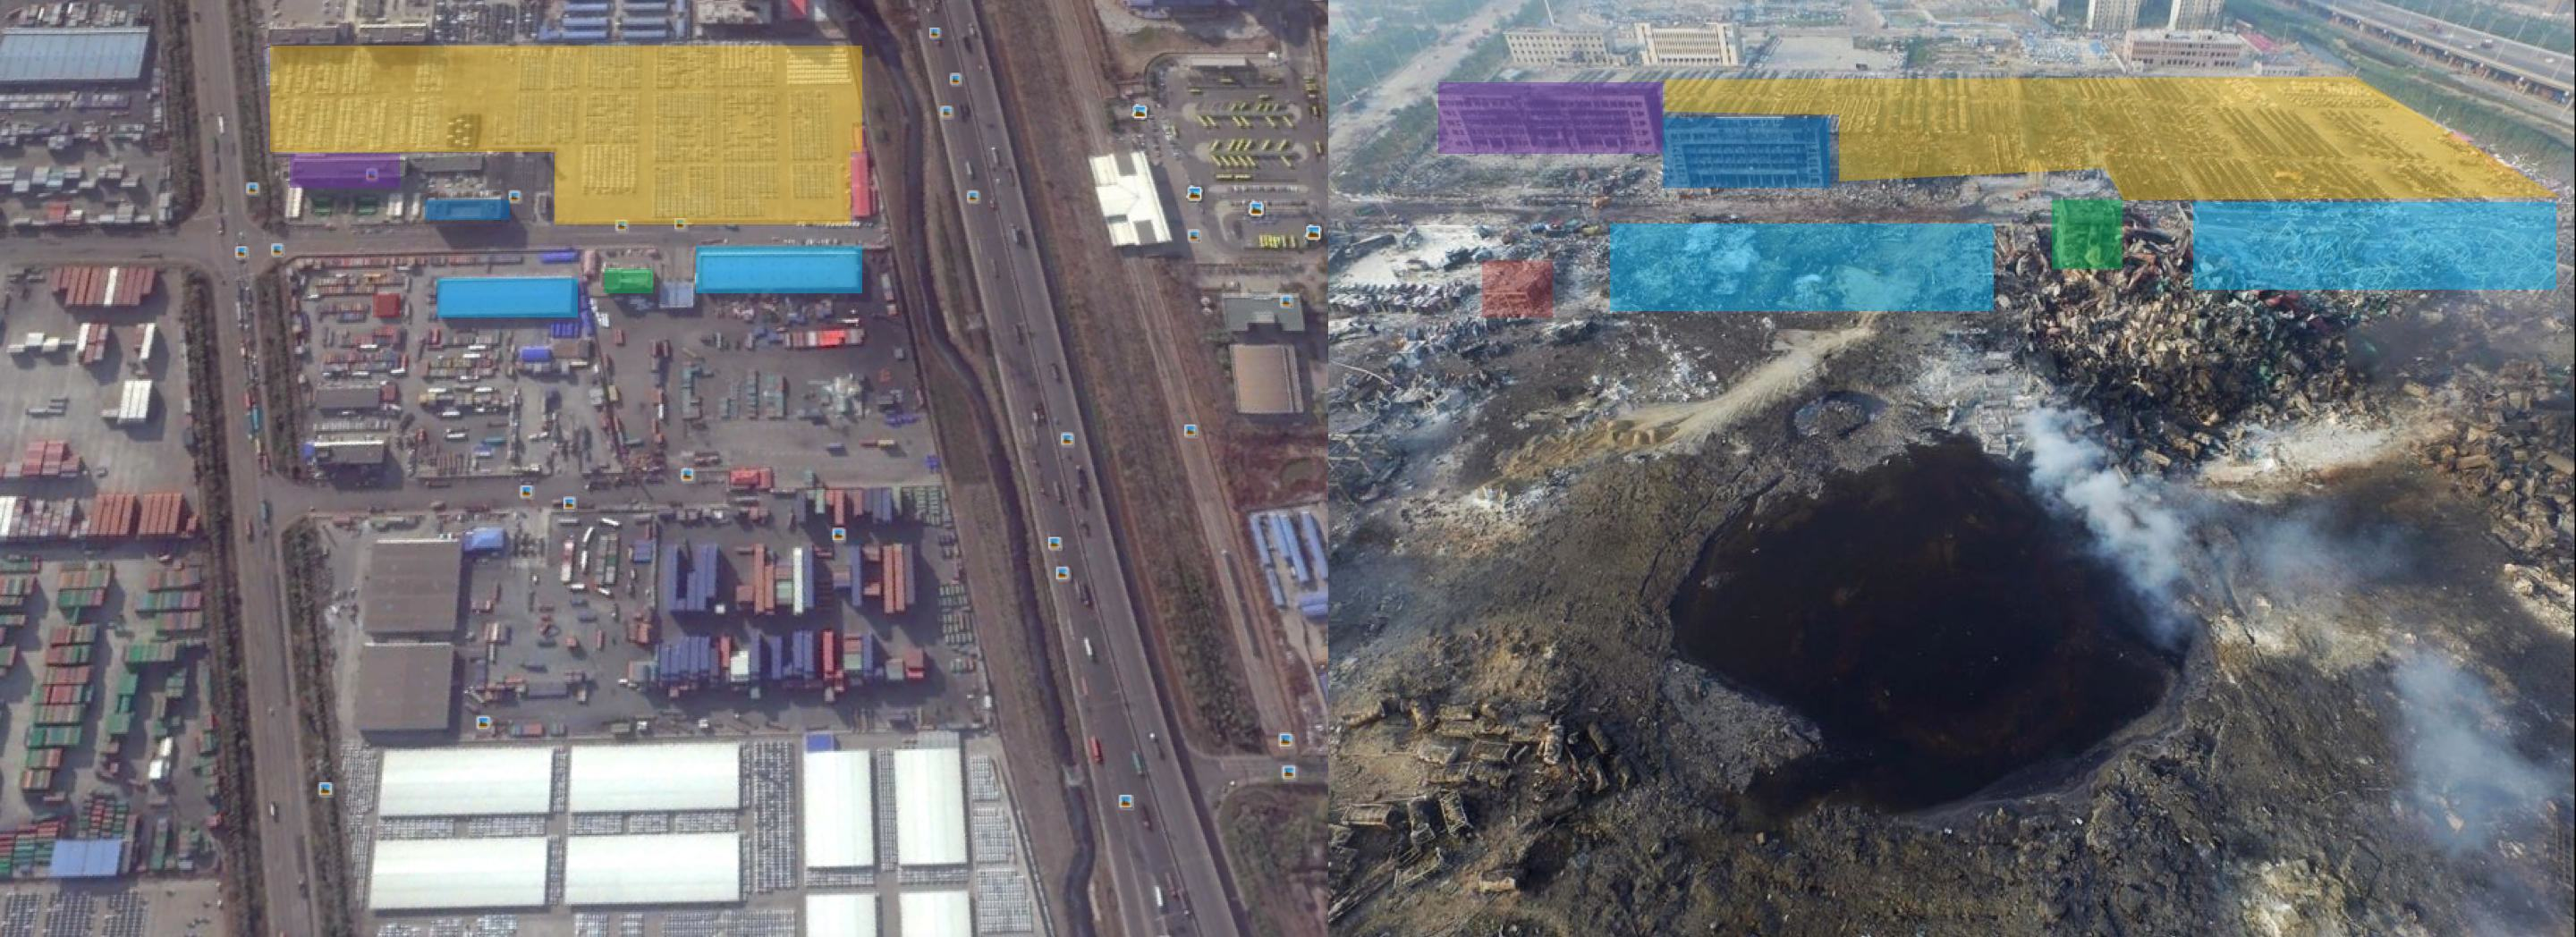 UNILAD tianjin 24 You Wont Believe The Size Of The Crater Left By The Tianjin Explosion